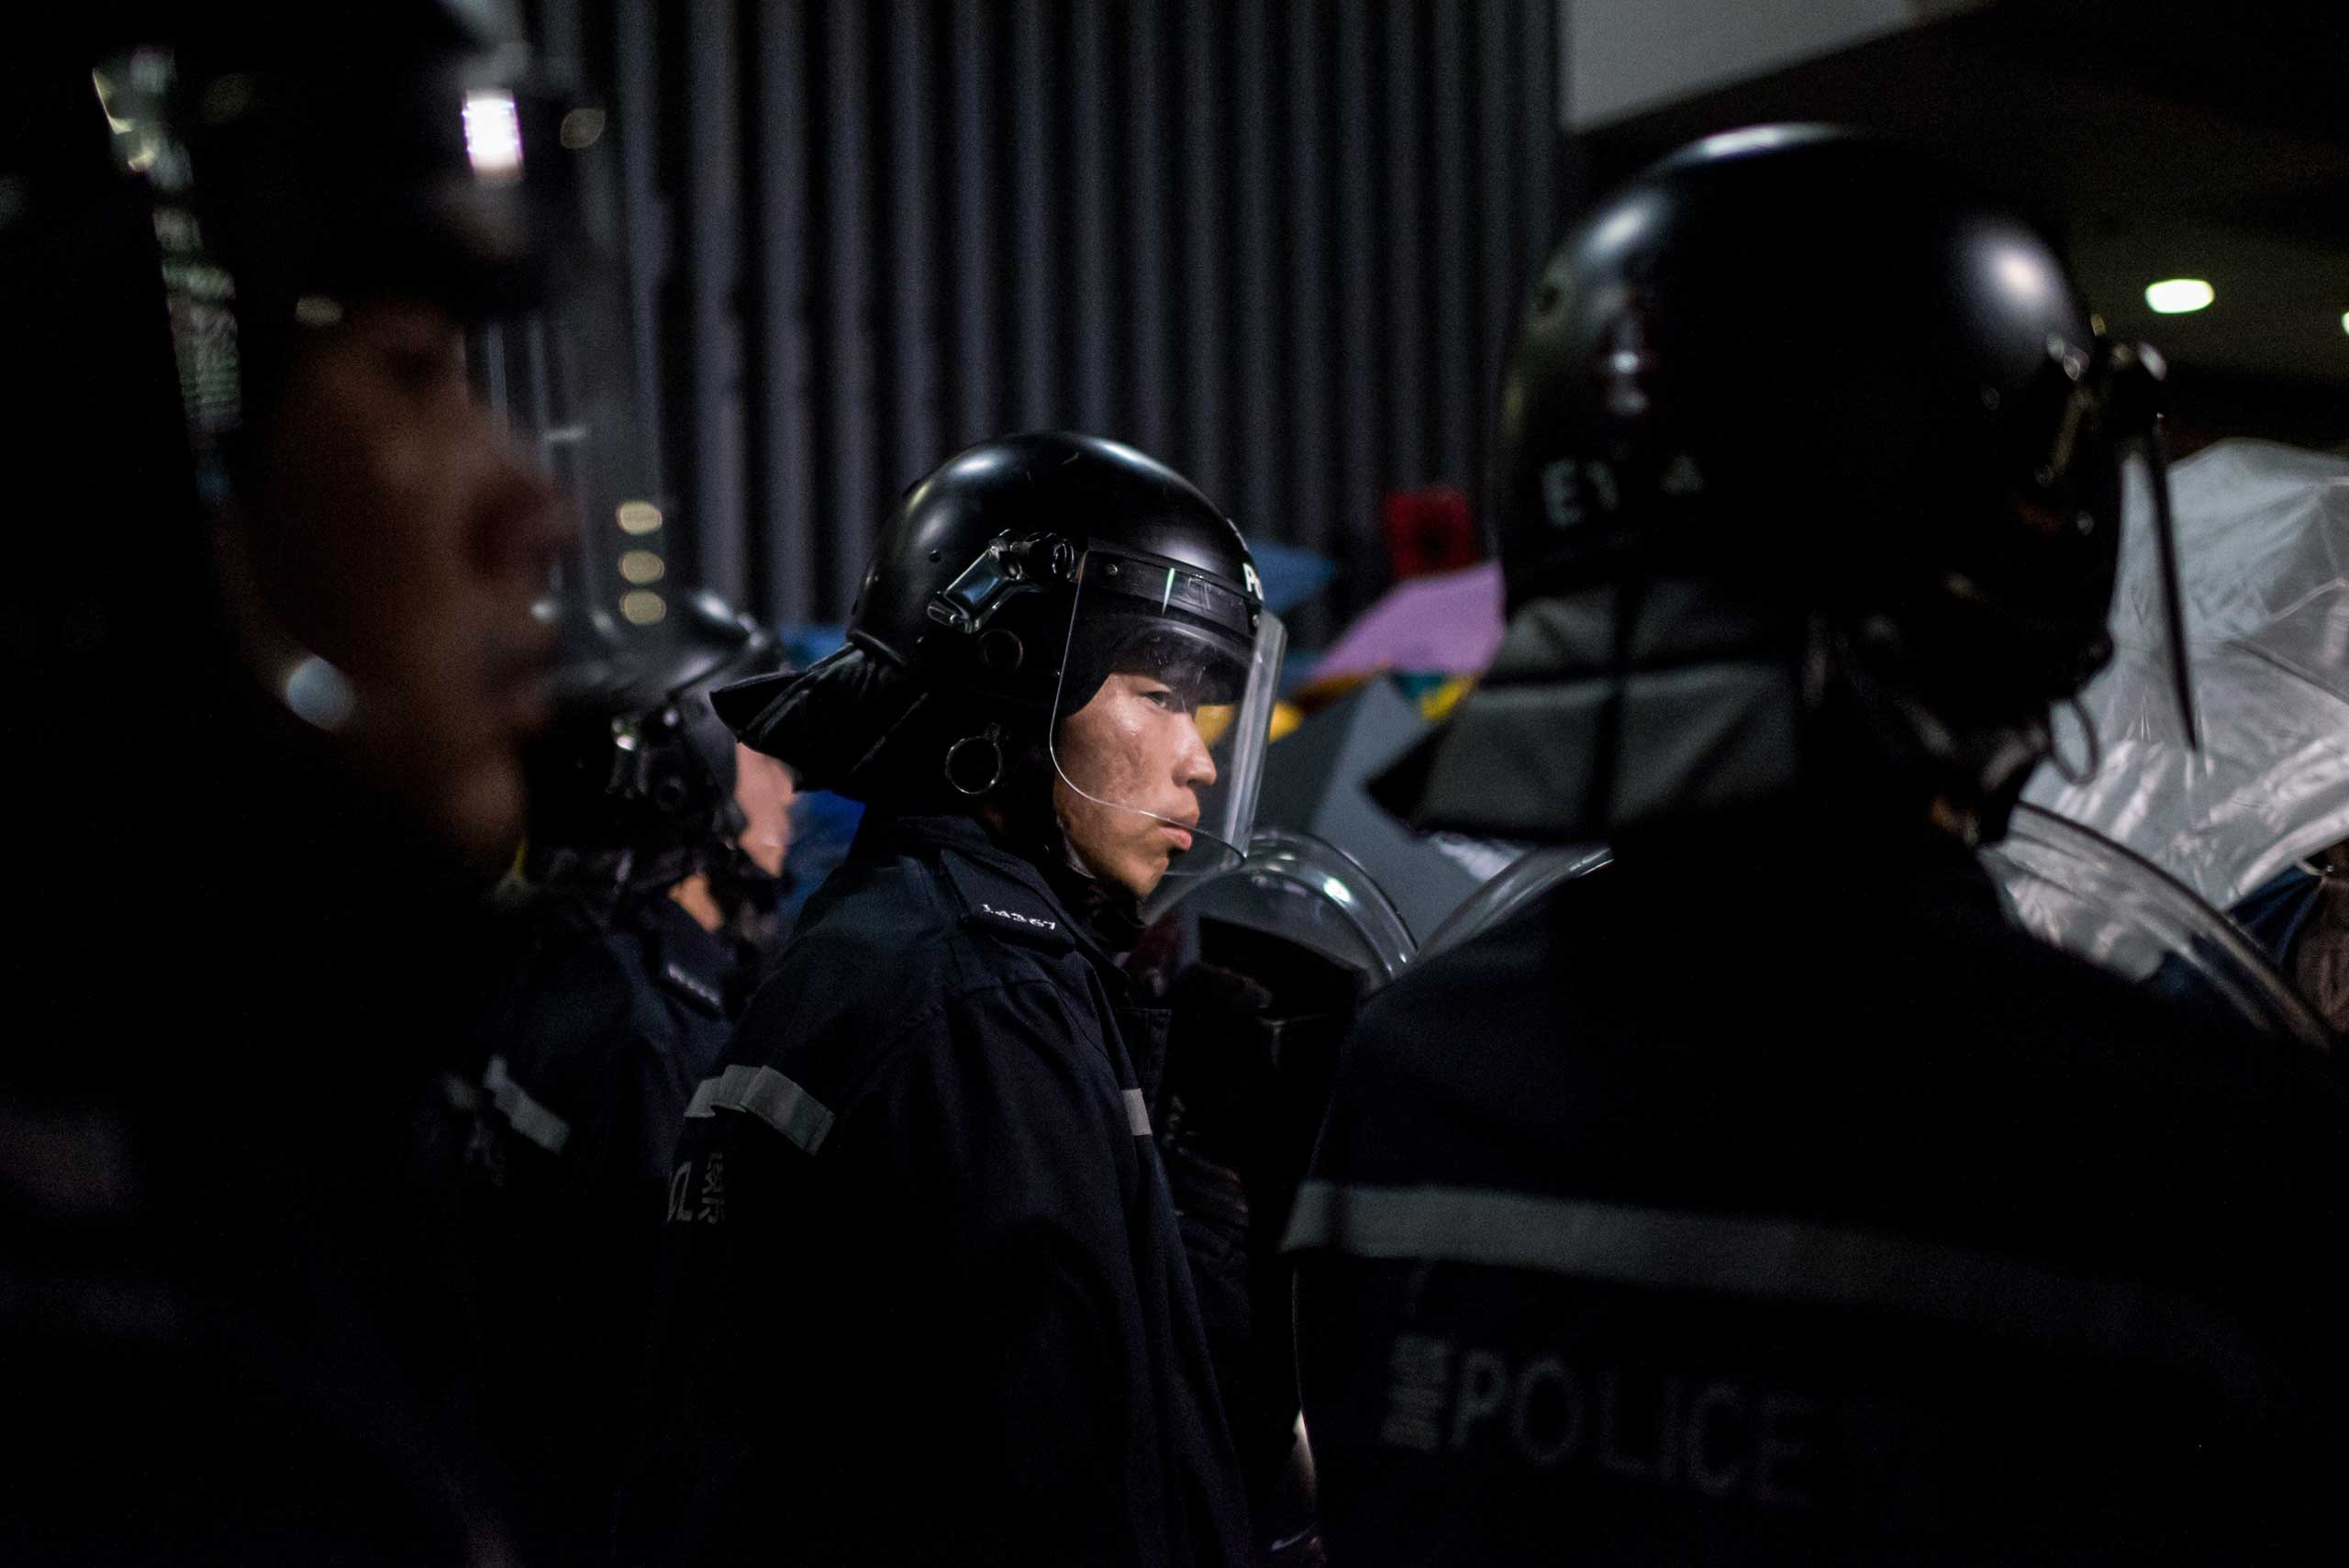 Police face pro-democracy protesters on Nov. 19, 2014 outside the central government offices in the Admiralty district of Hong Kong.